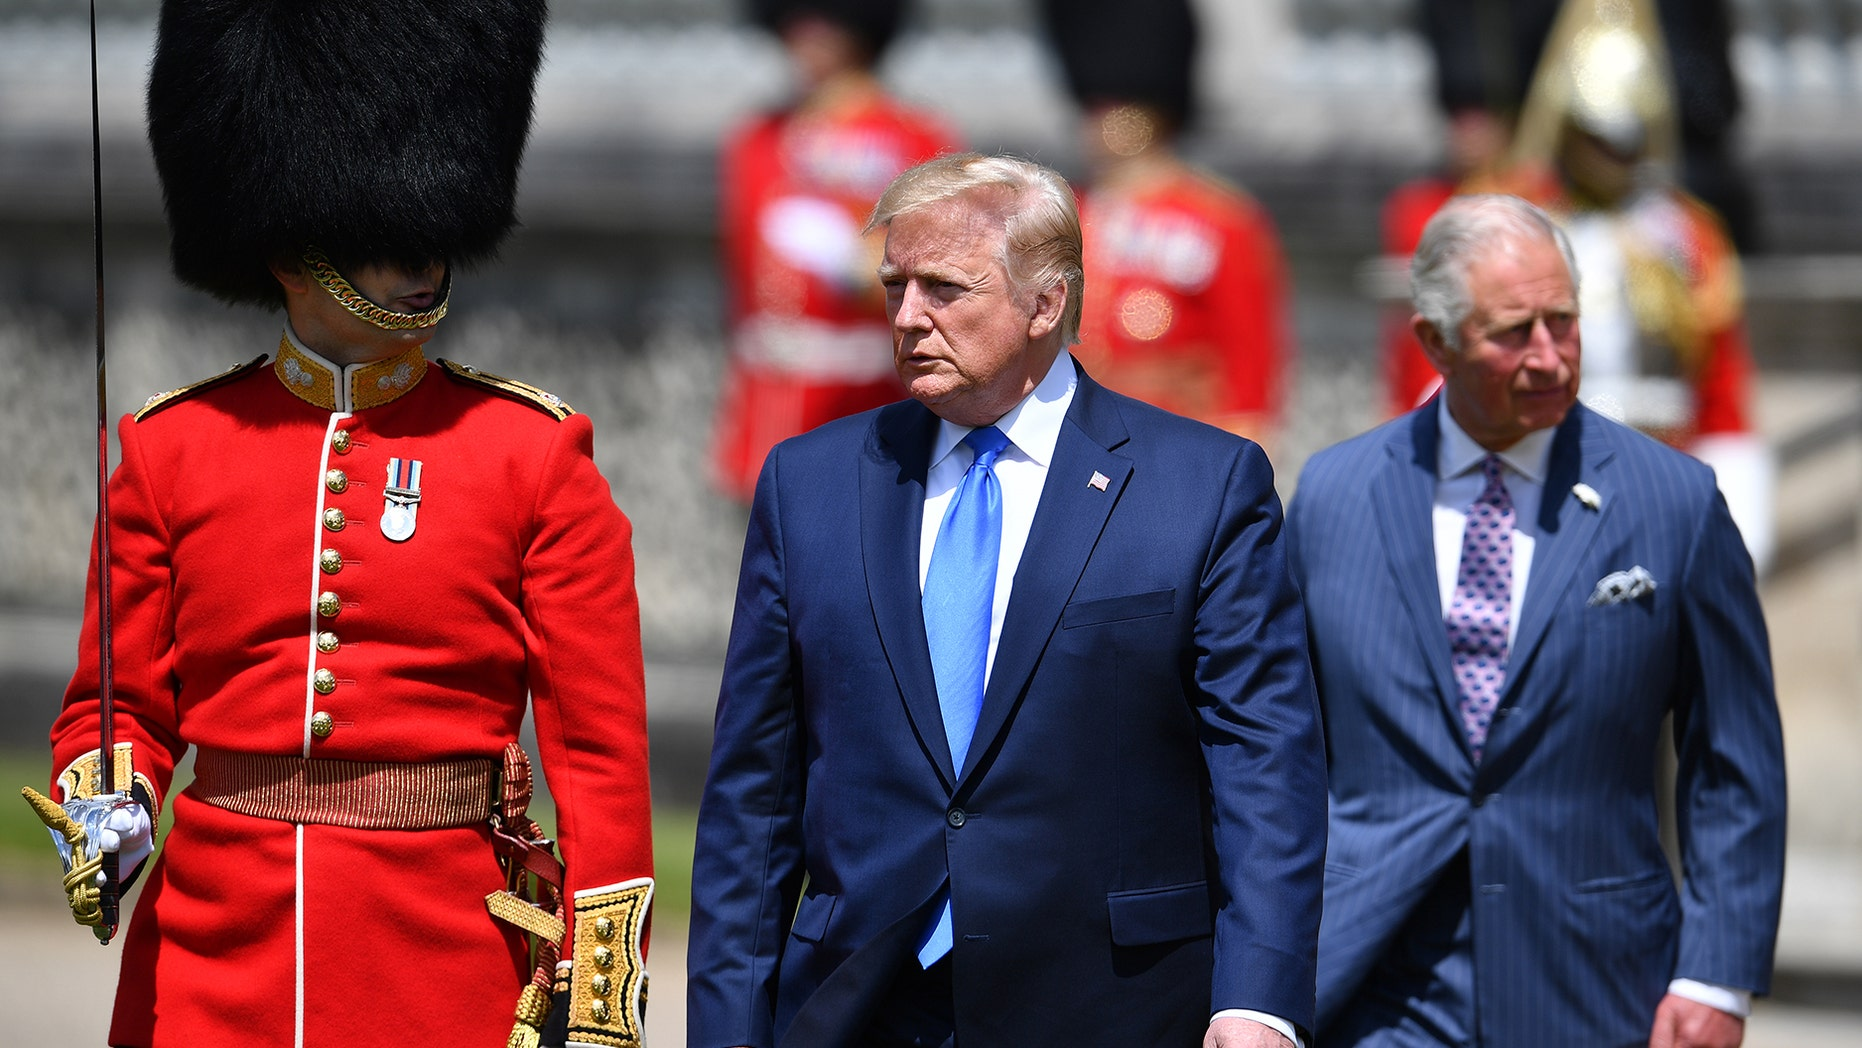 An activist group is attempting to get under President Donald Trump's skin during his state visit to the United Kingdom with some strategically posted images on London's biggest landmarks